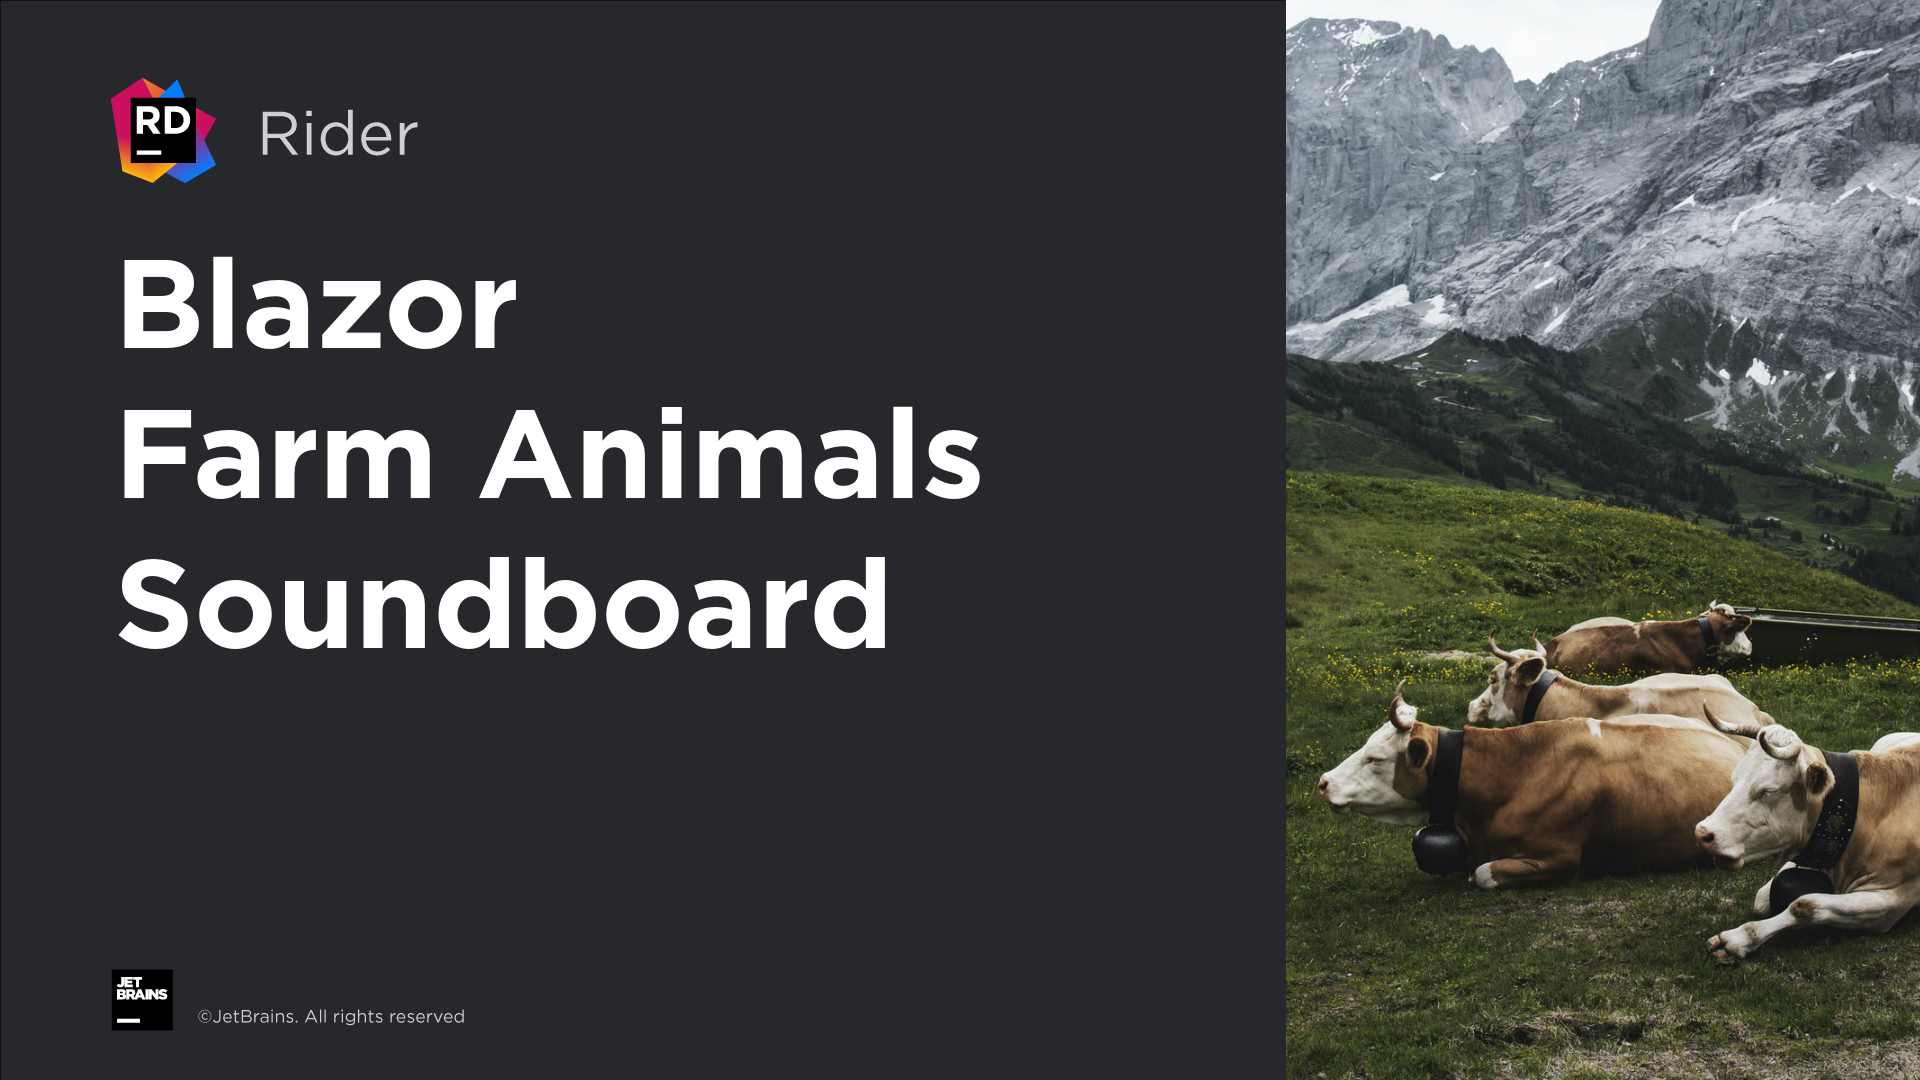 Blazor Farm Animals Soundboard